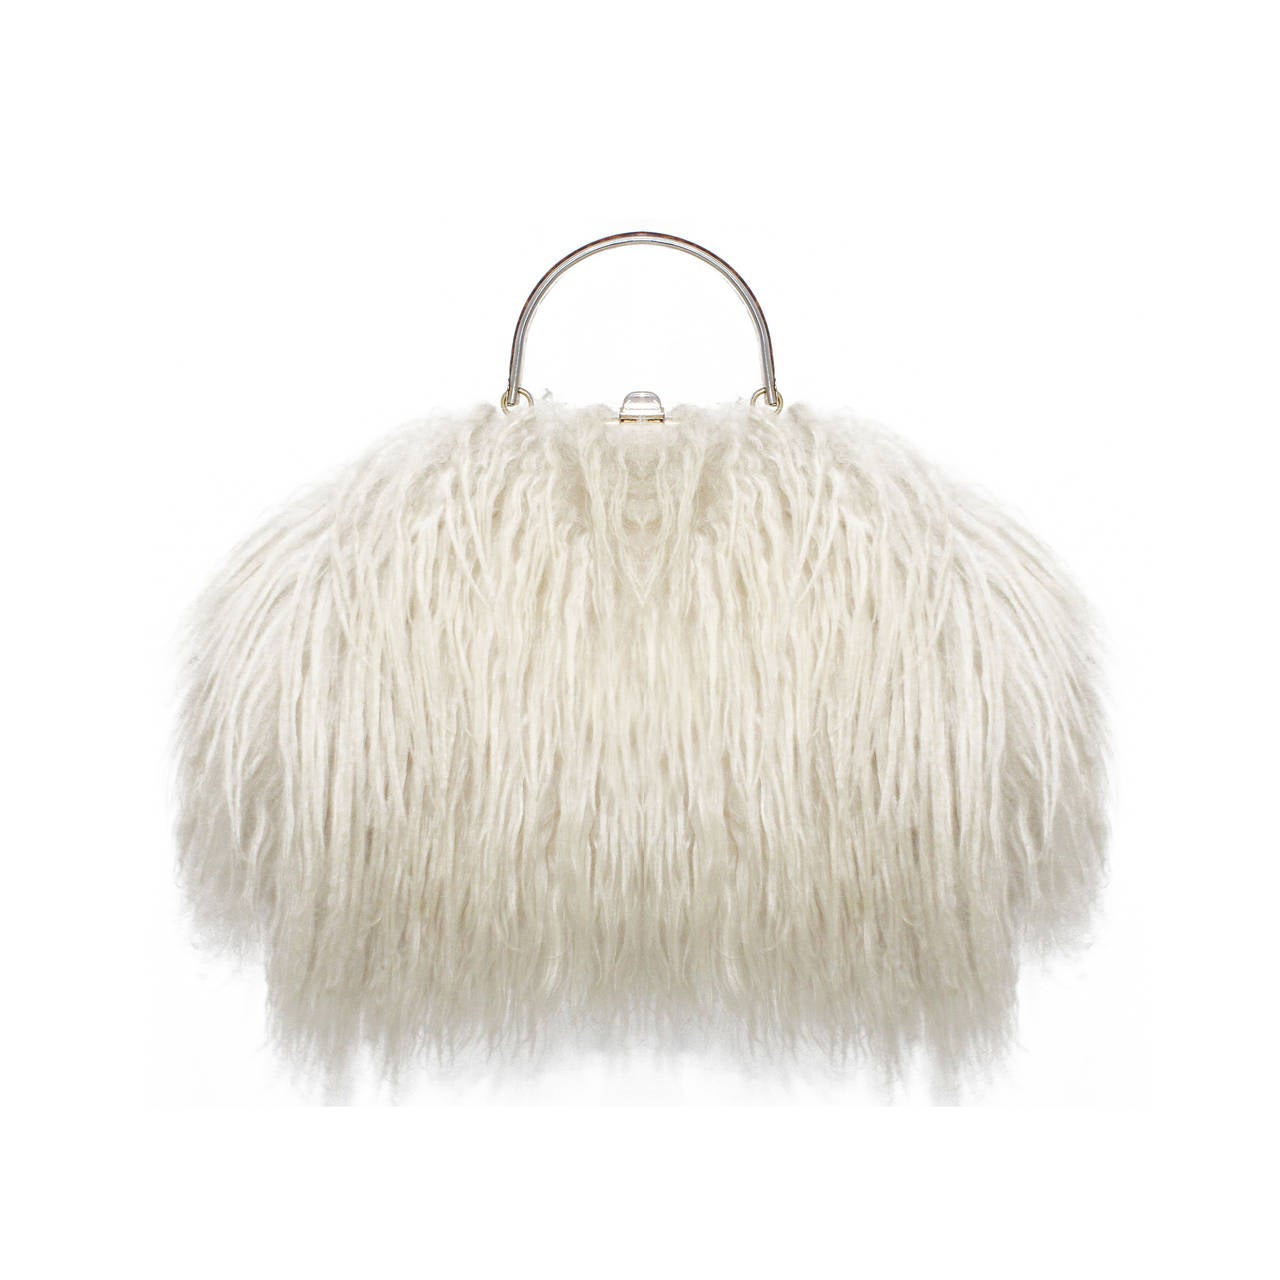 0f5d641f2d1 Fine and Rare 1960s XL Mongolian Lamb Fur Purse Bag For Sale at 1stdibs